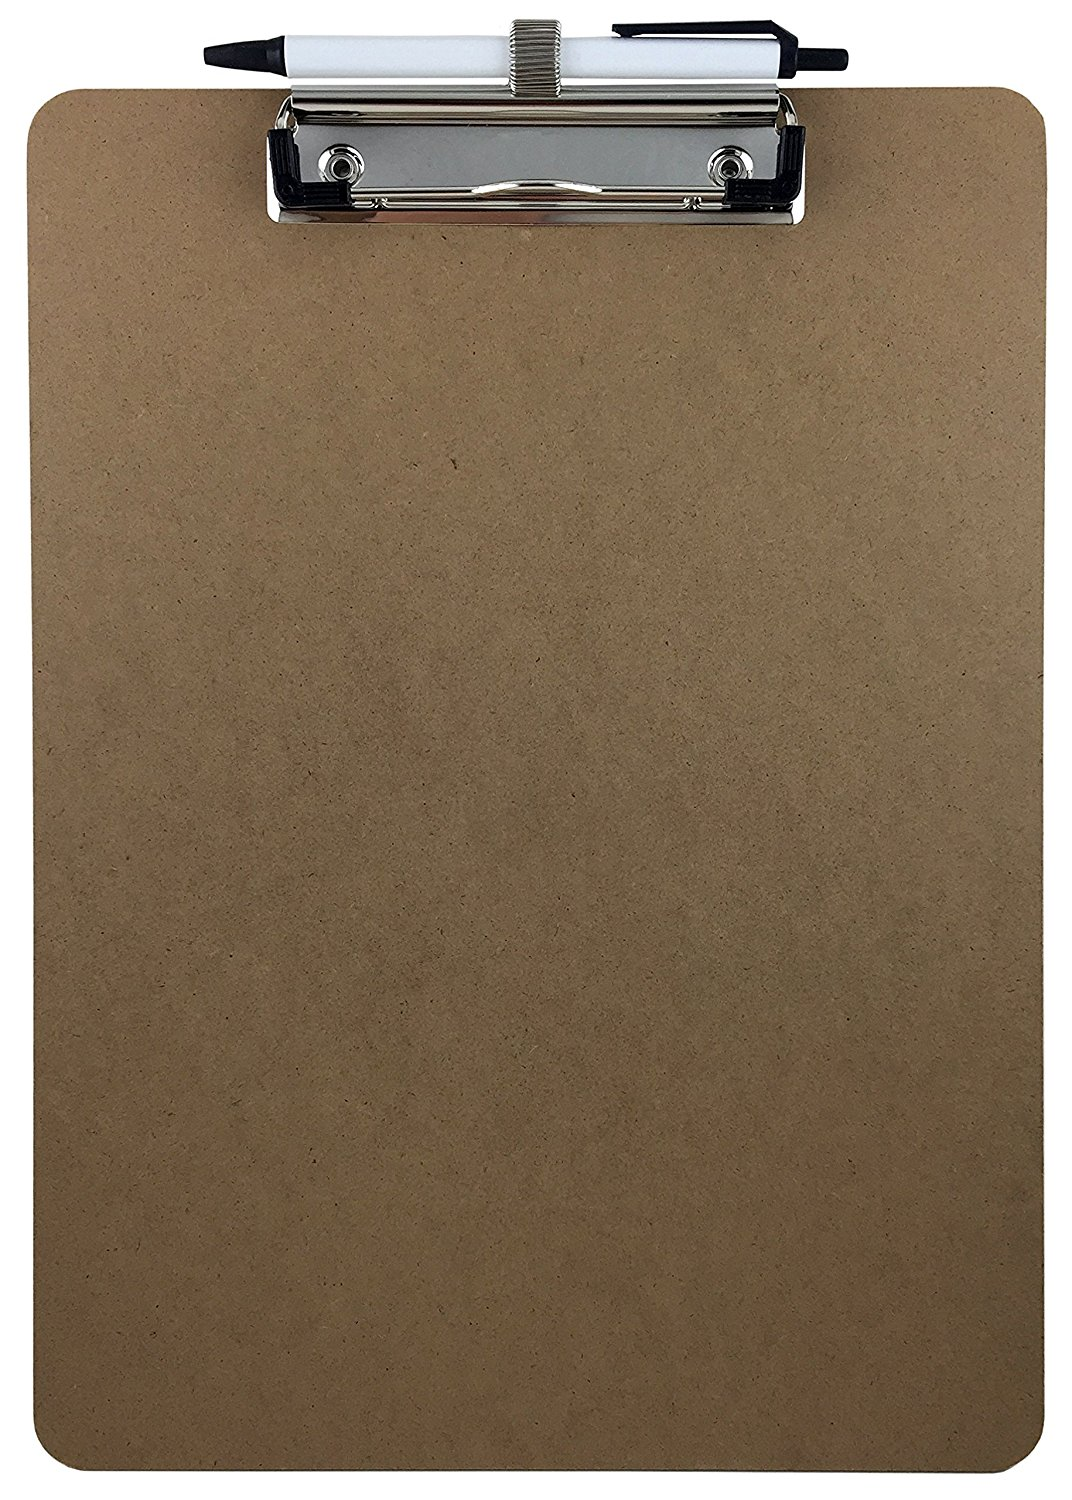 Superior quality custom A4 size durable wooden clipboard with pen, paper hardboard, one side clipboard